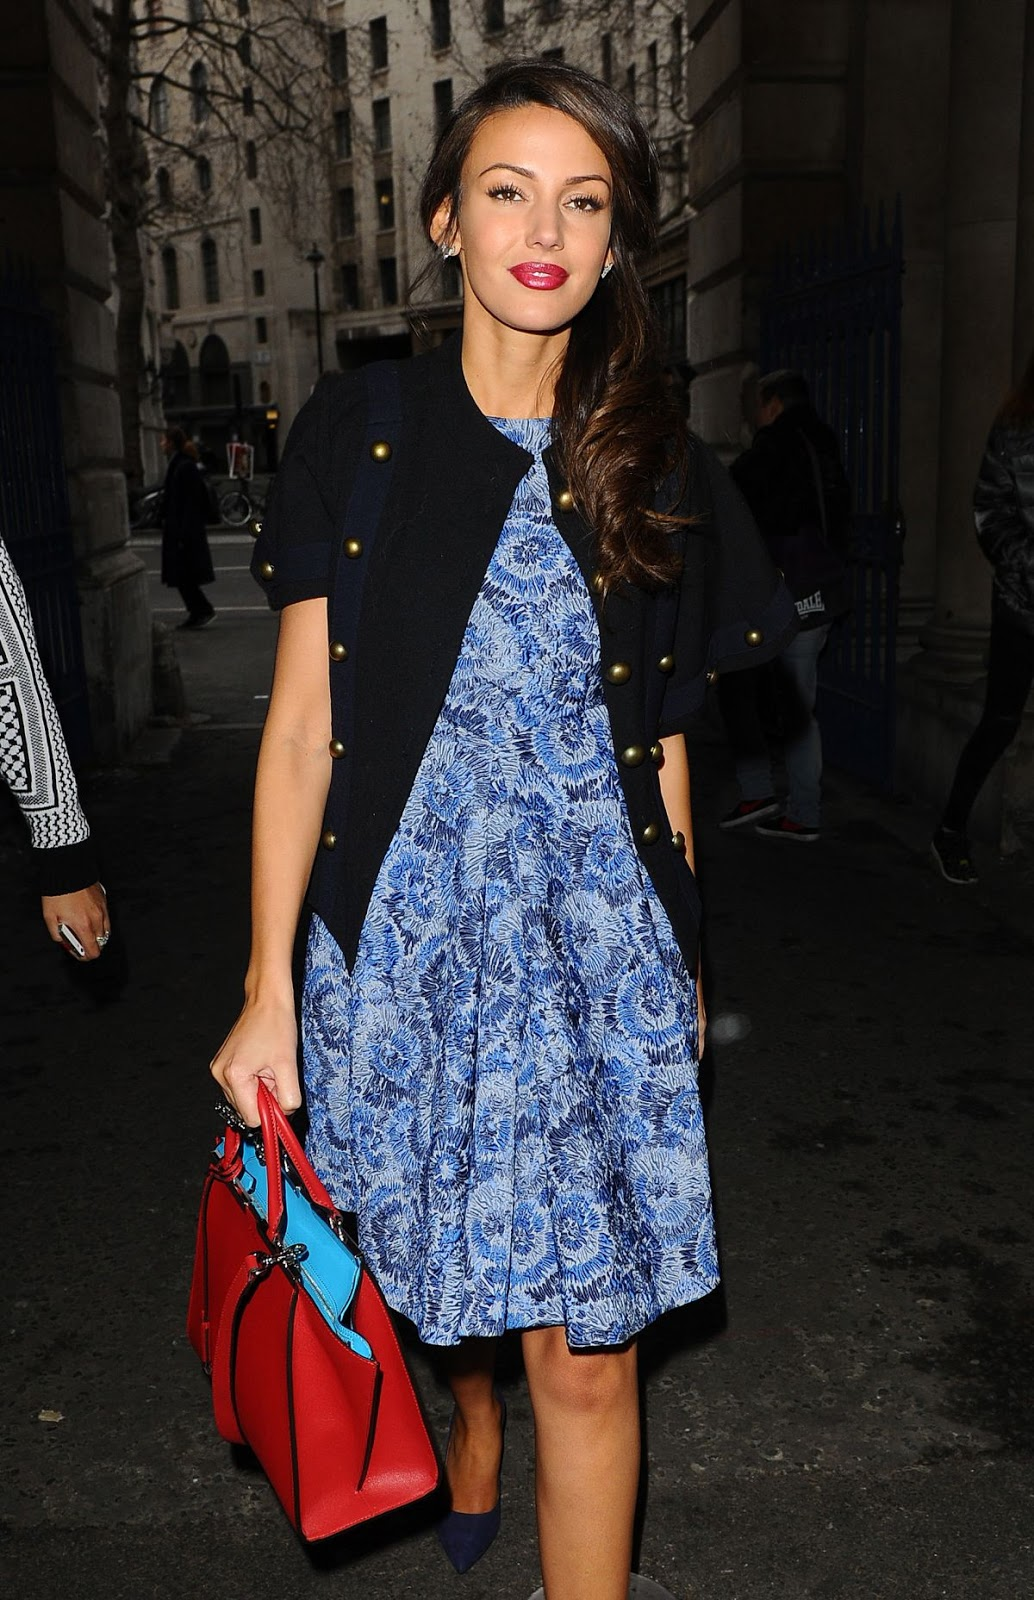 HD Photos of Michelle Keegan At Jean Pierre Braganza Fashion Show In London